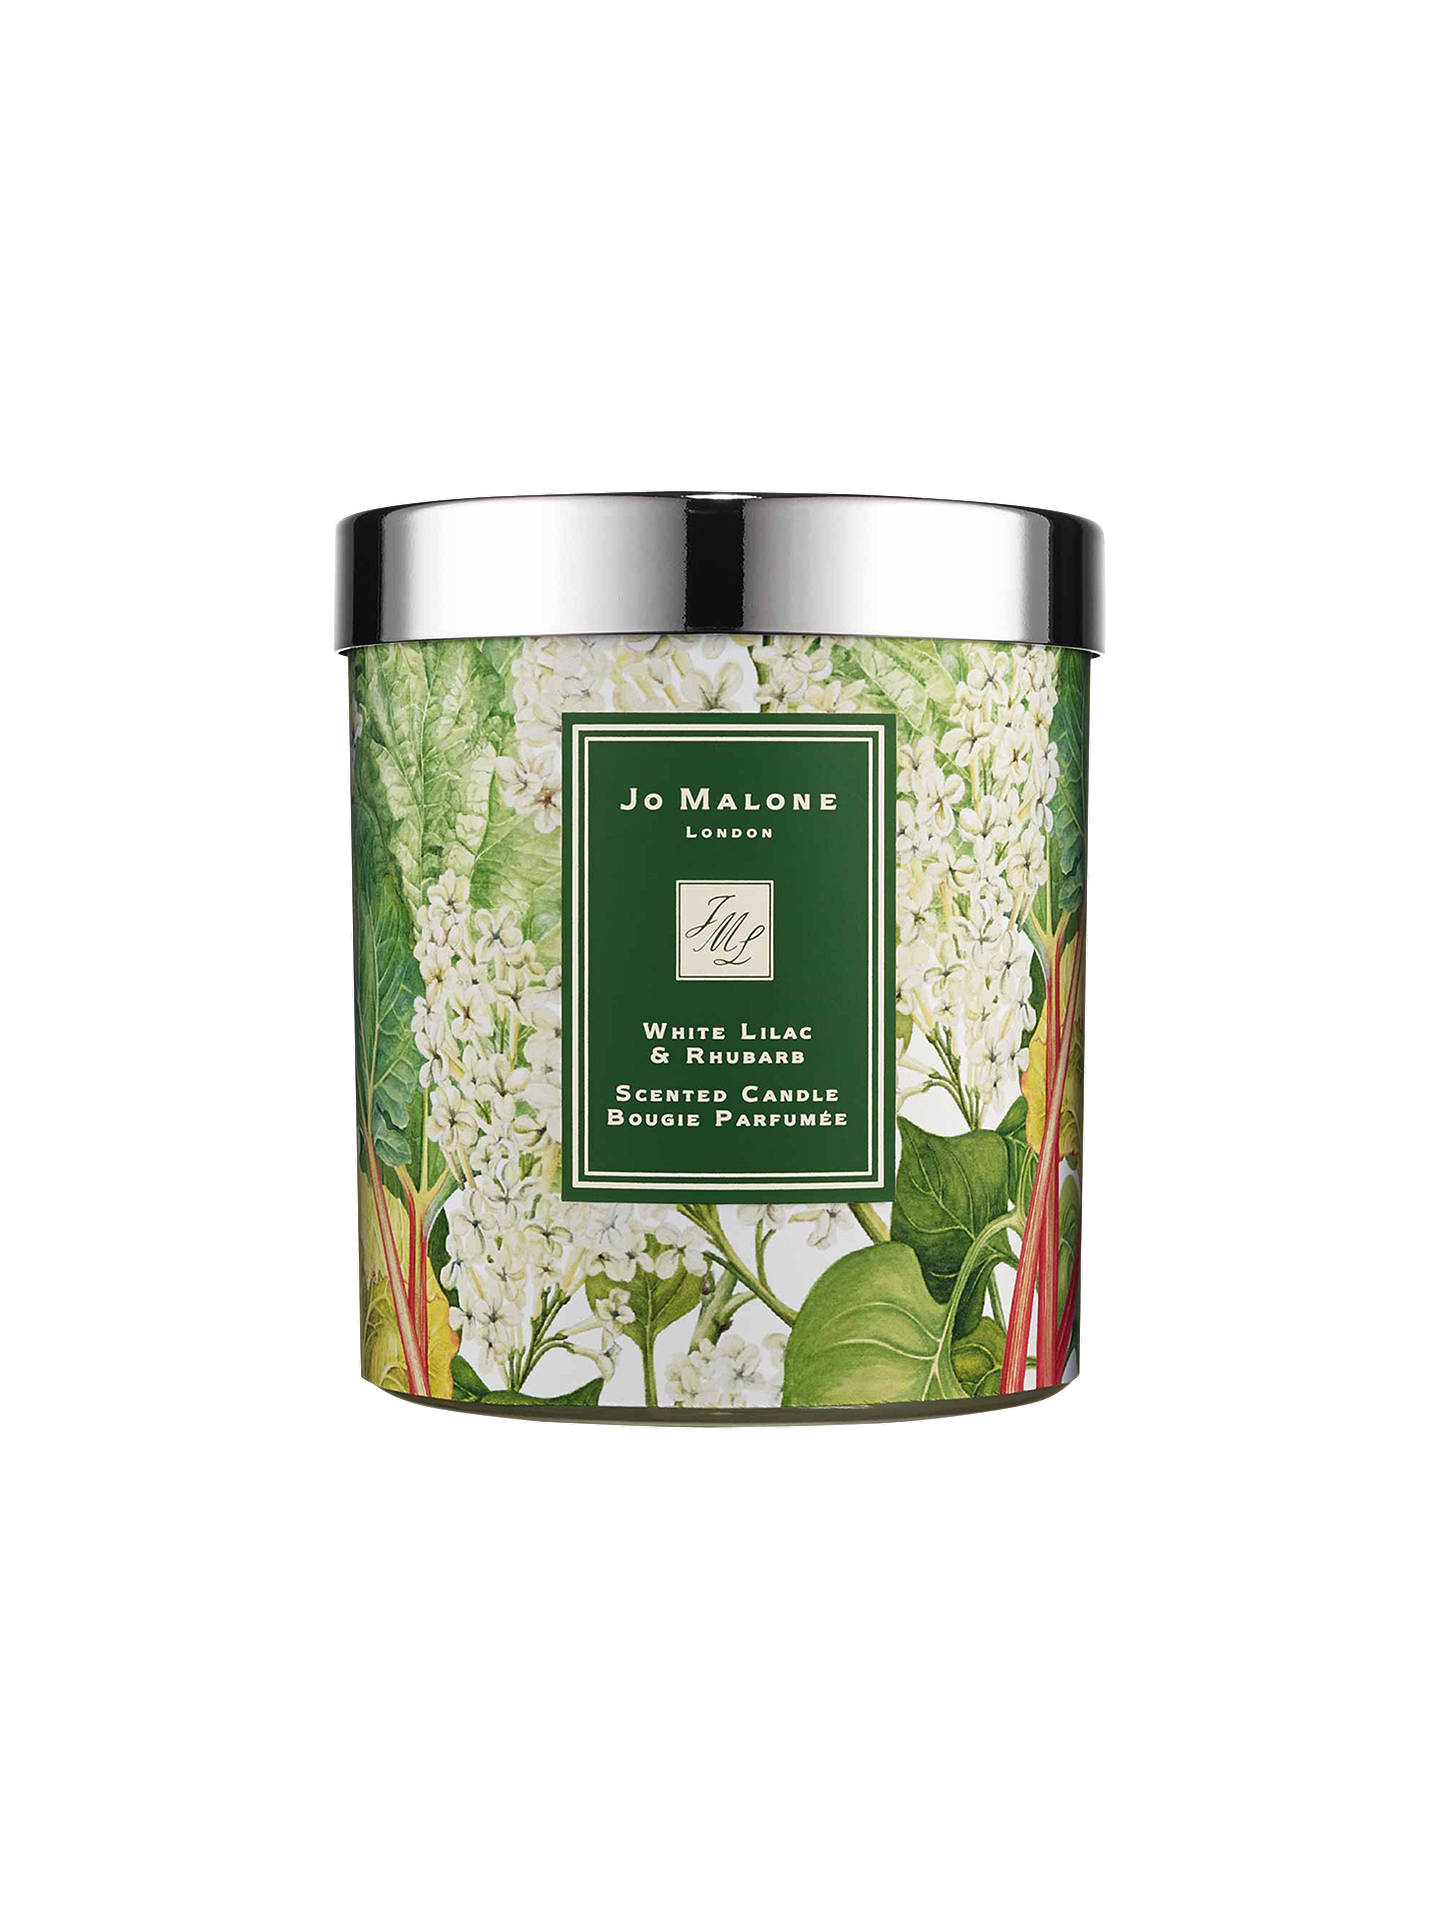 Buy Jo Malone London White Lilac & Rhubarb Scented Charity Home Candle, 200g Online at johnlewis.com